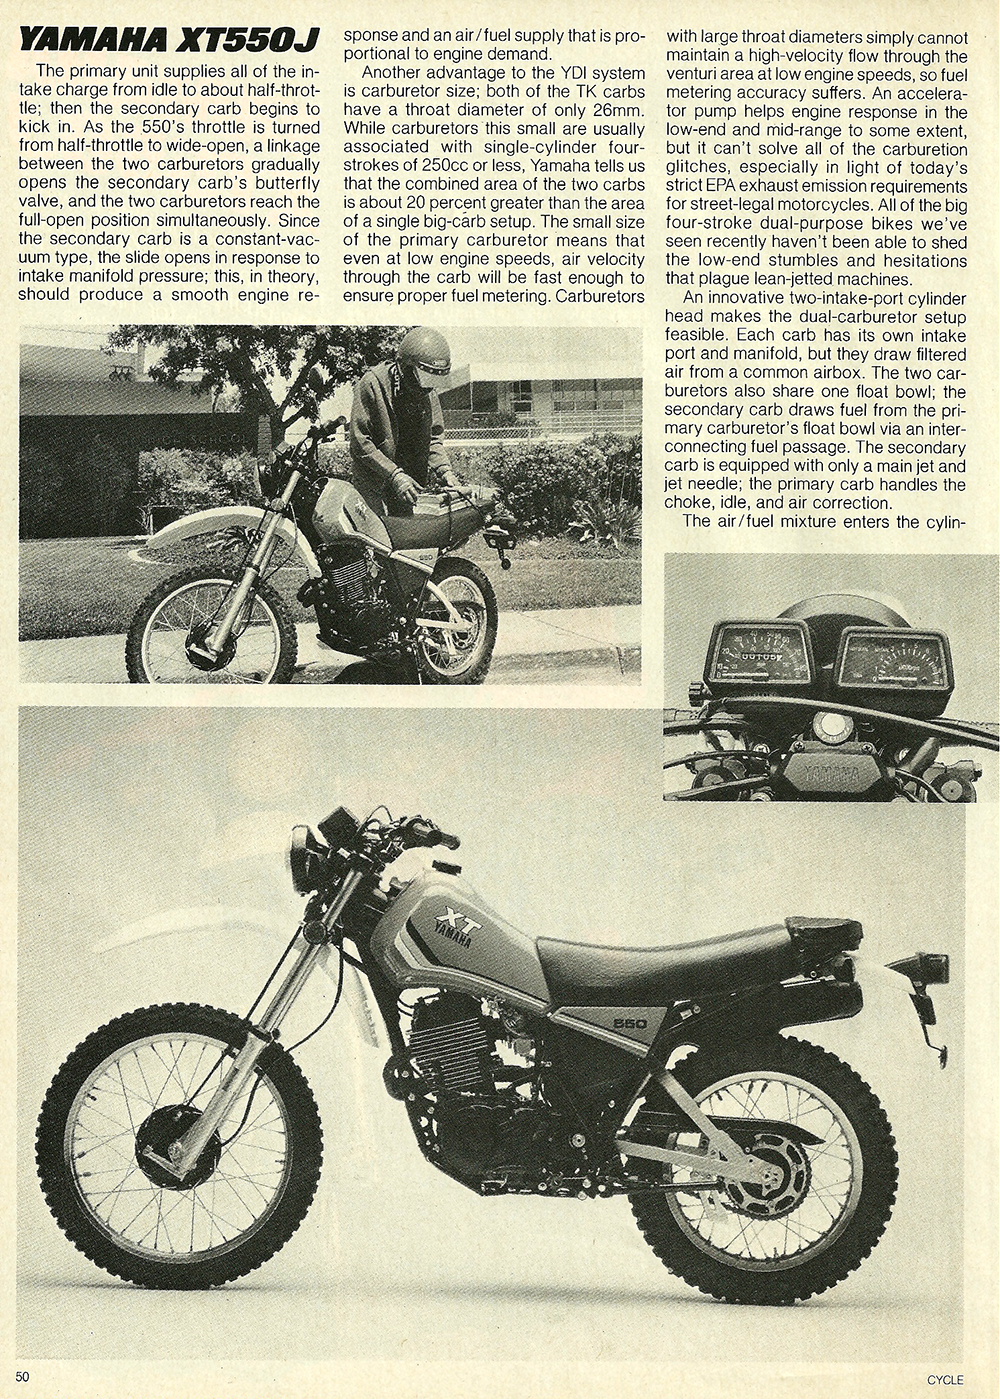 1982 Yamaha XT550J off road test 2.jpg